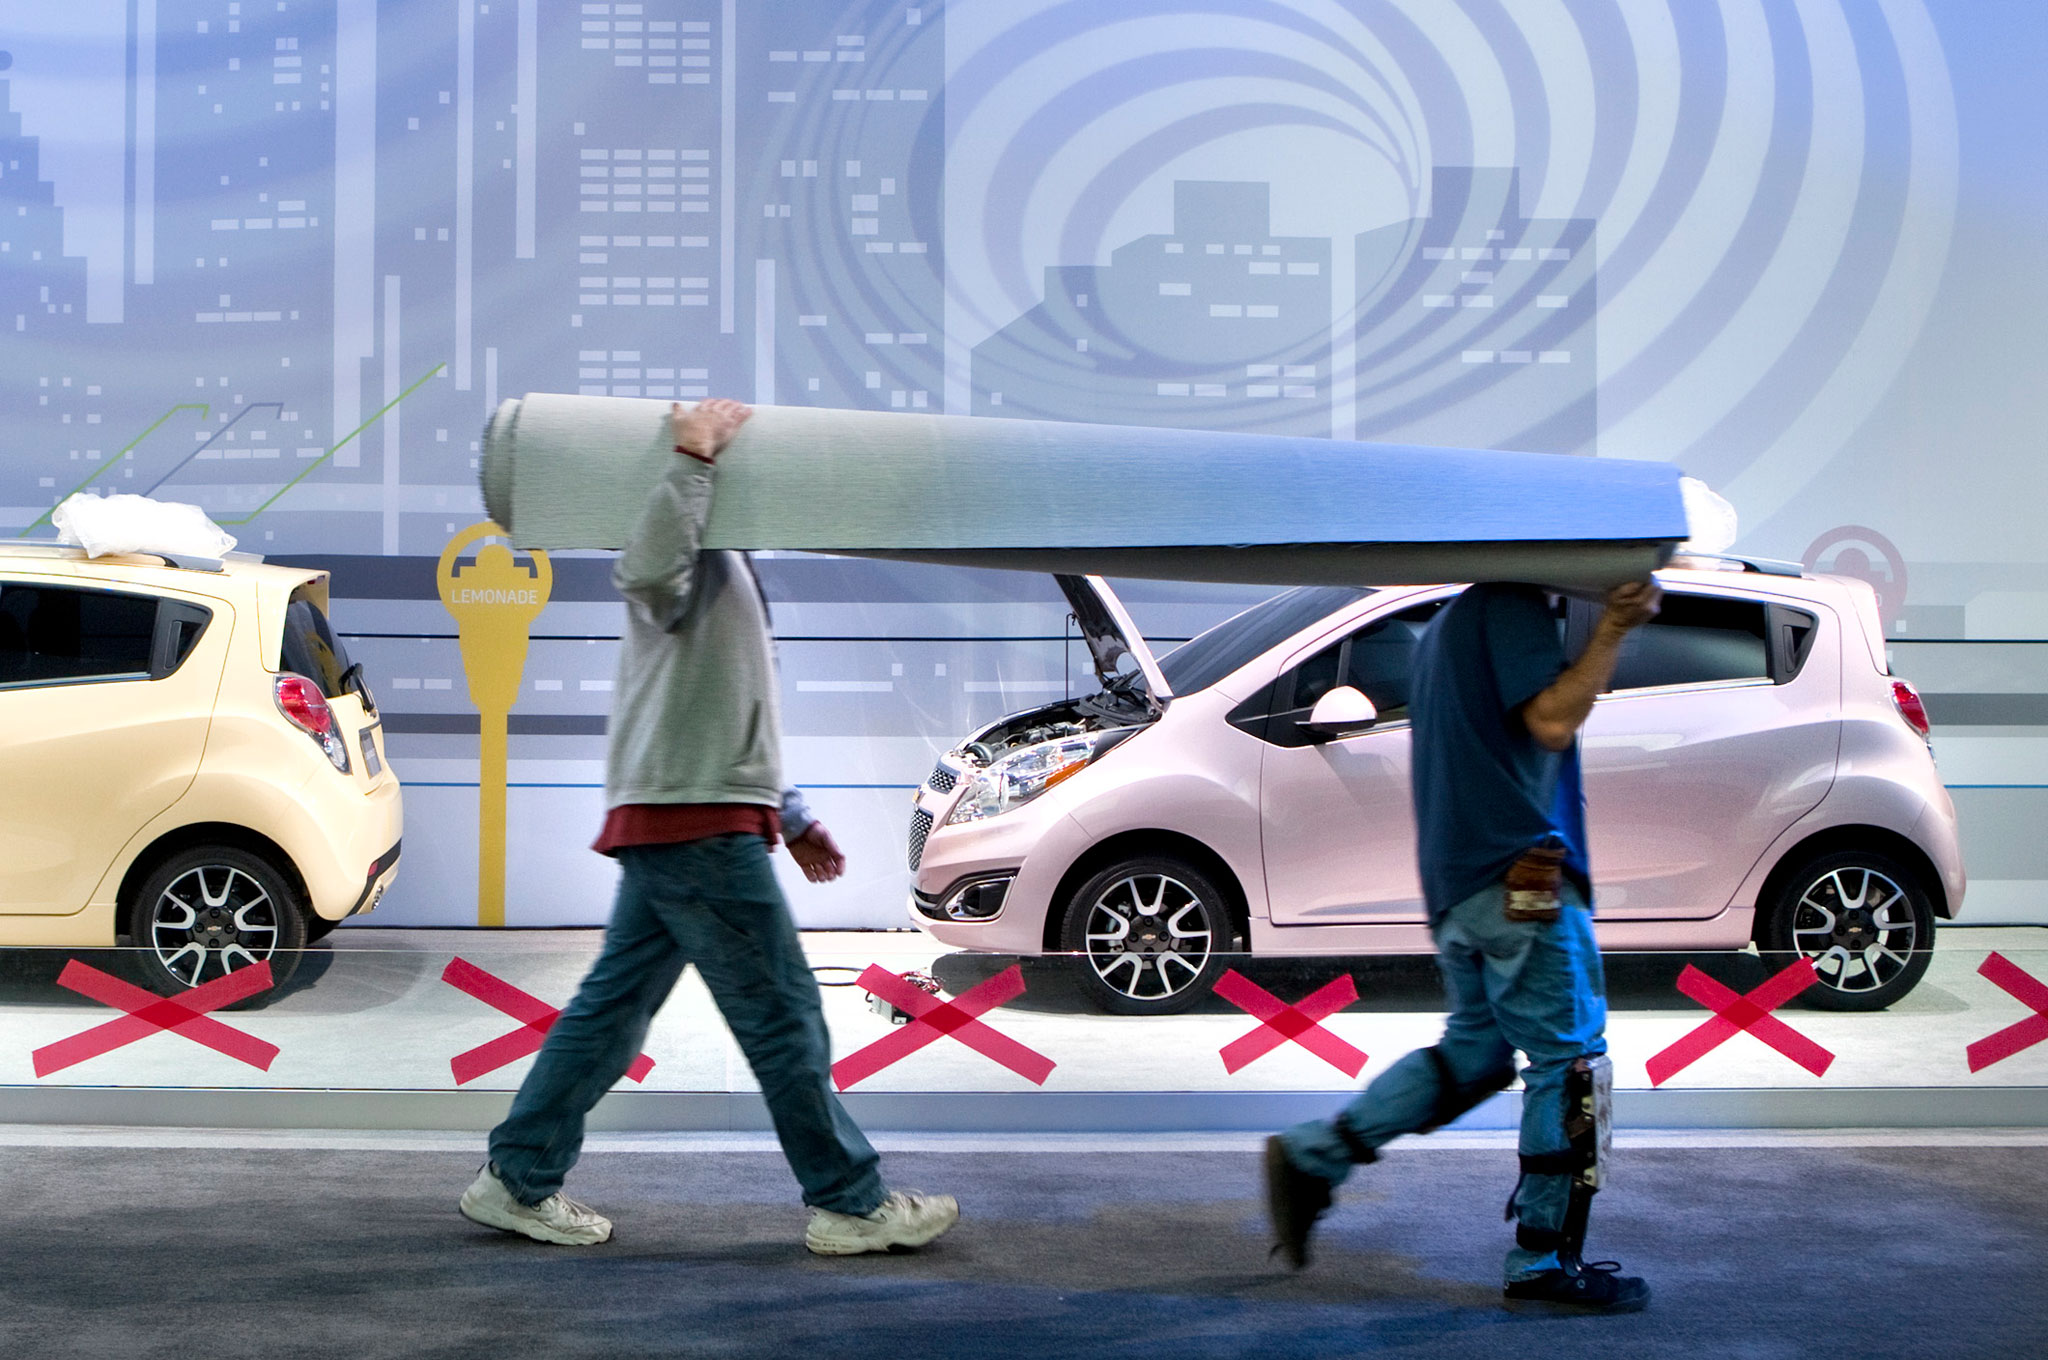 Detroit Auto Show Not Expected To Be Impacted By City